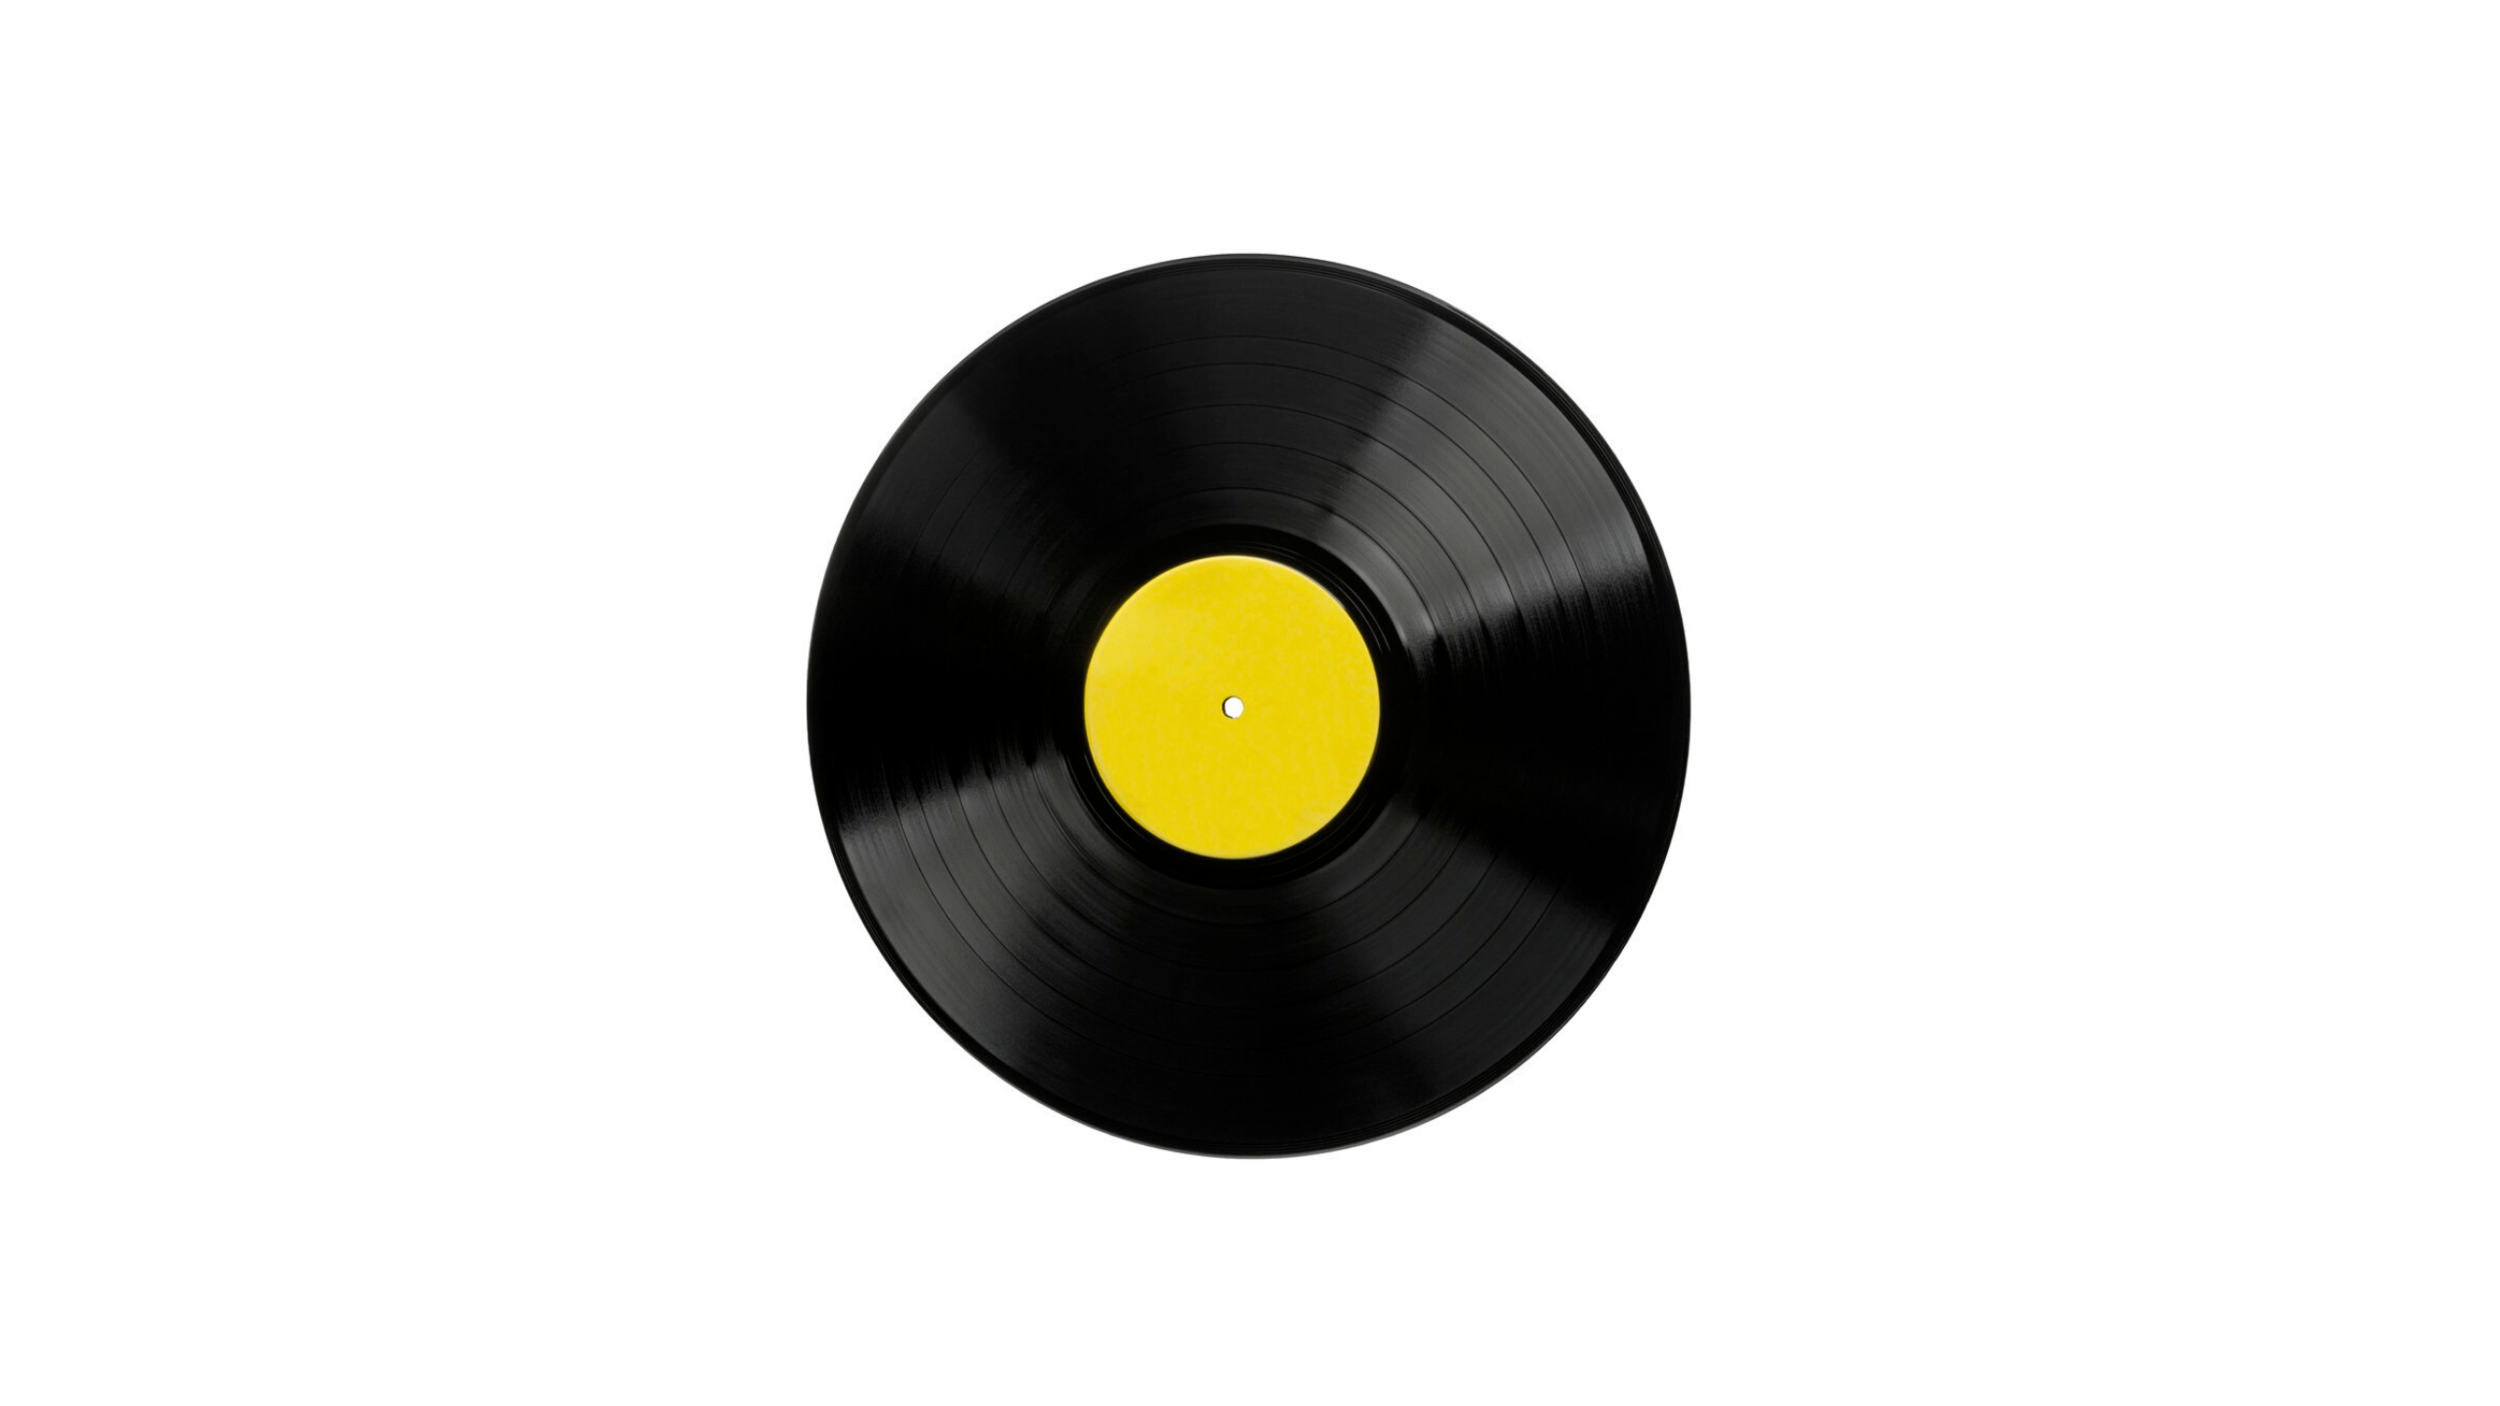 Vinyl Record - Vinyl records dominated music distribution in the 20th century, but have also experienced a revival in the 21st! We can transfer 7